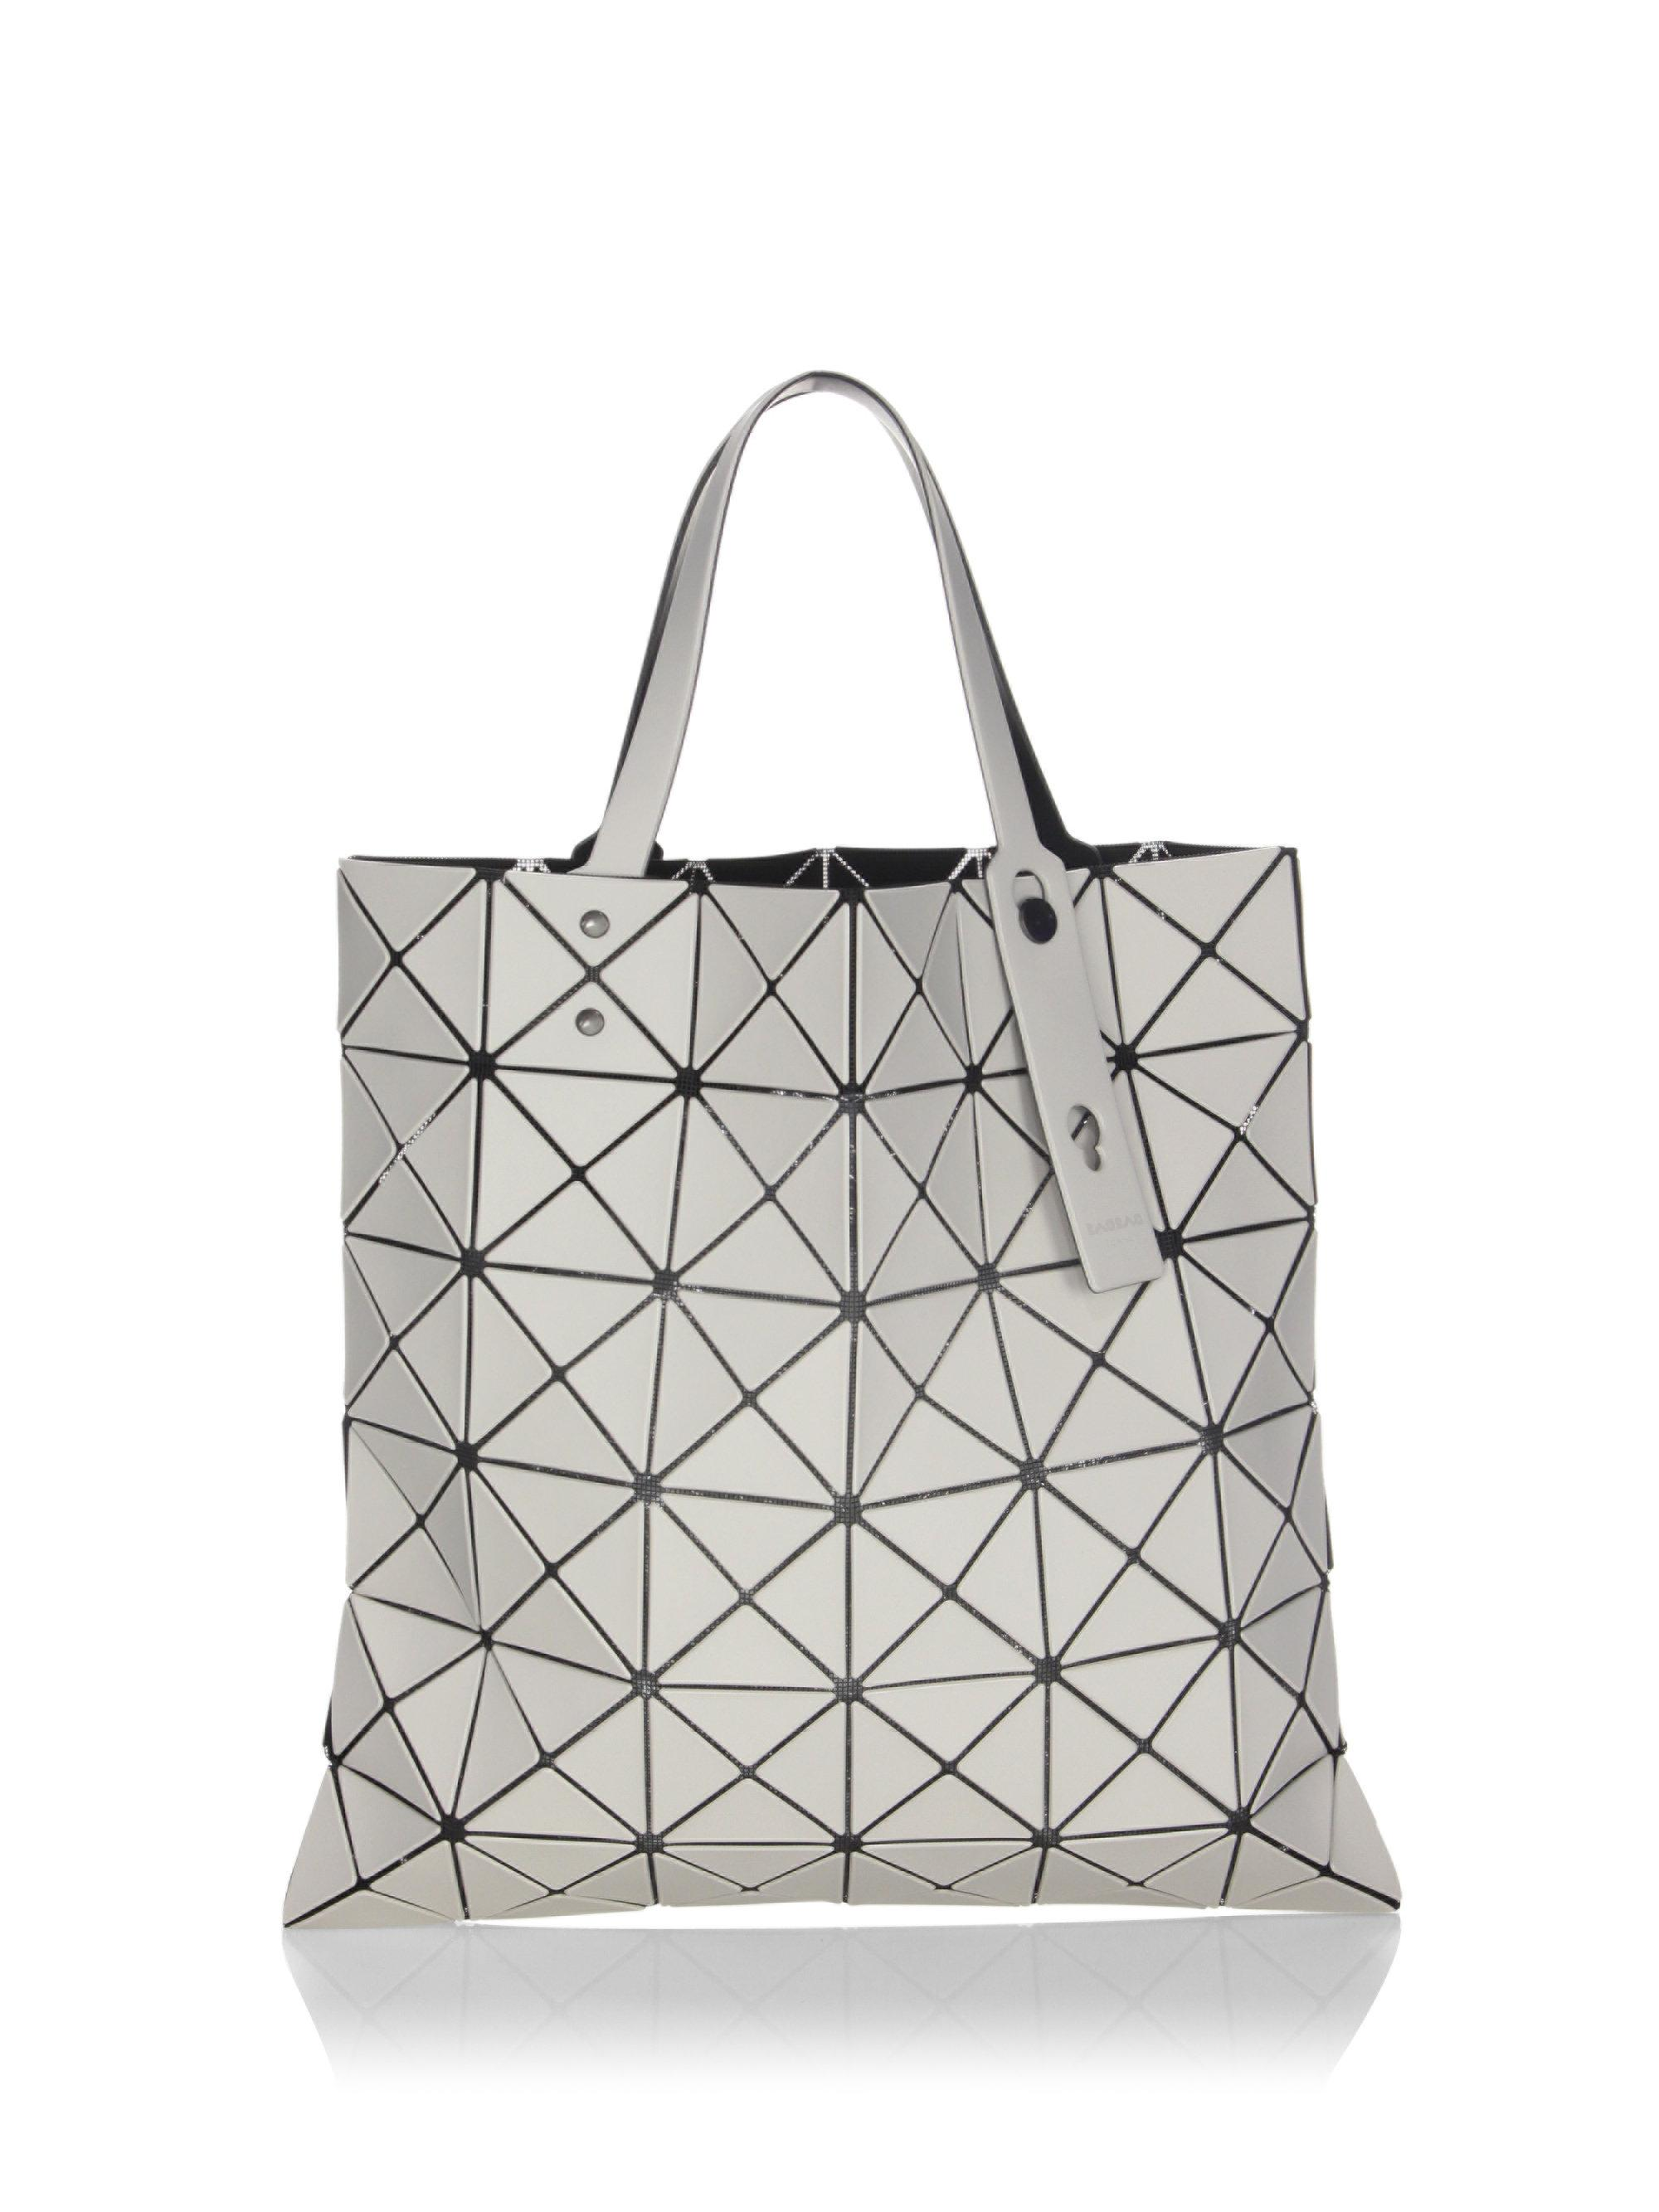 Lyst - Bao Bao Issey Miyake Lucent Frost Tote in Gray 48d1f560b6ea2